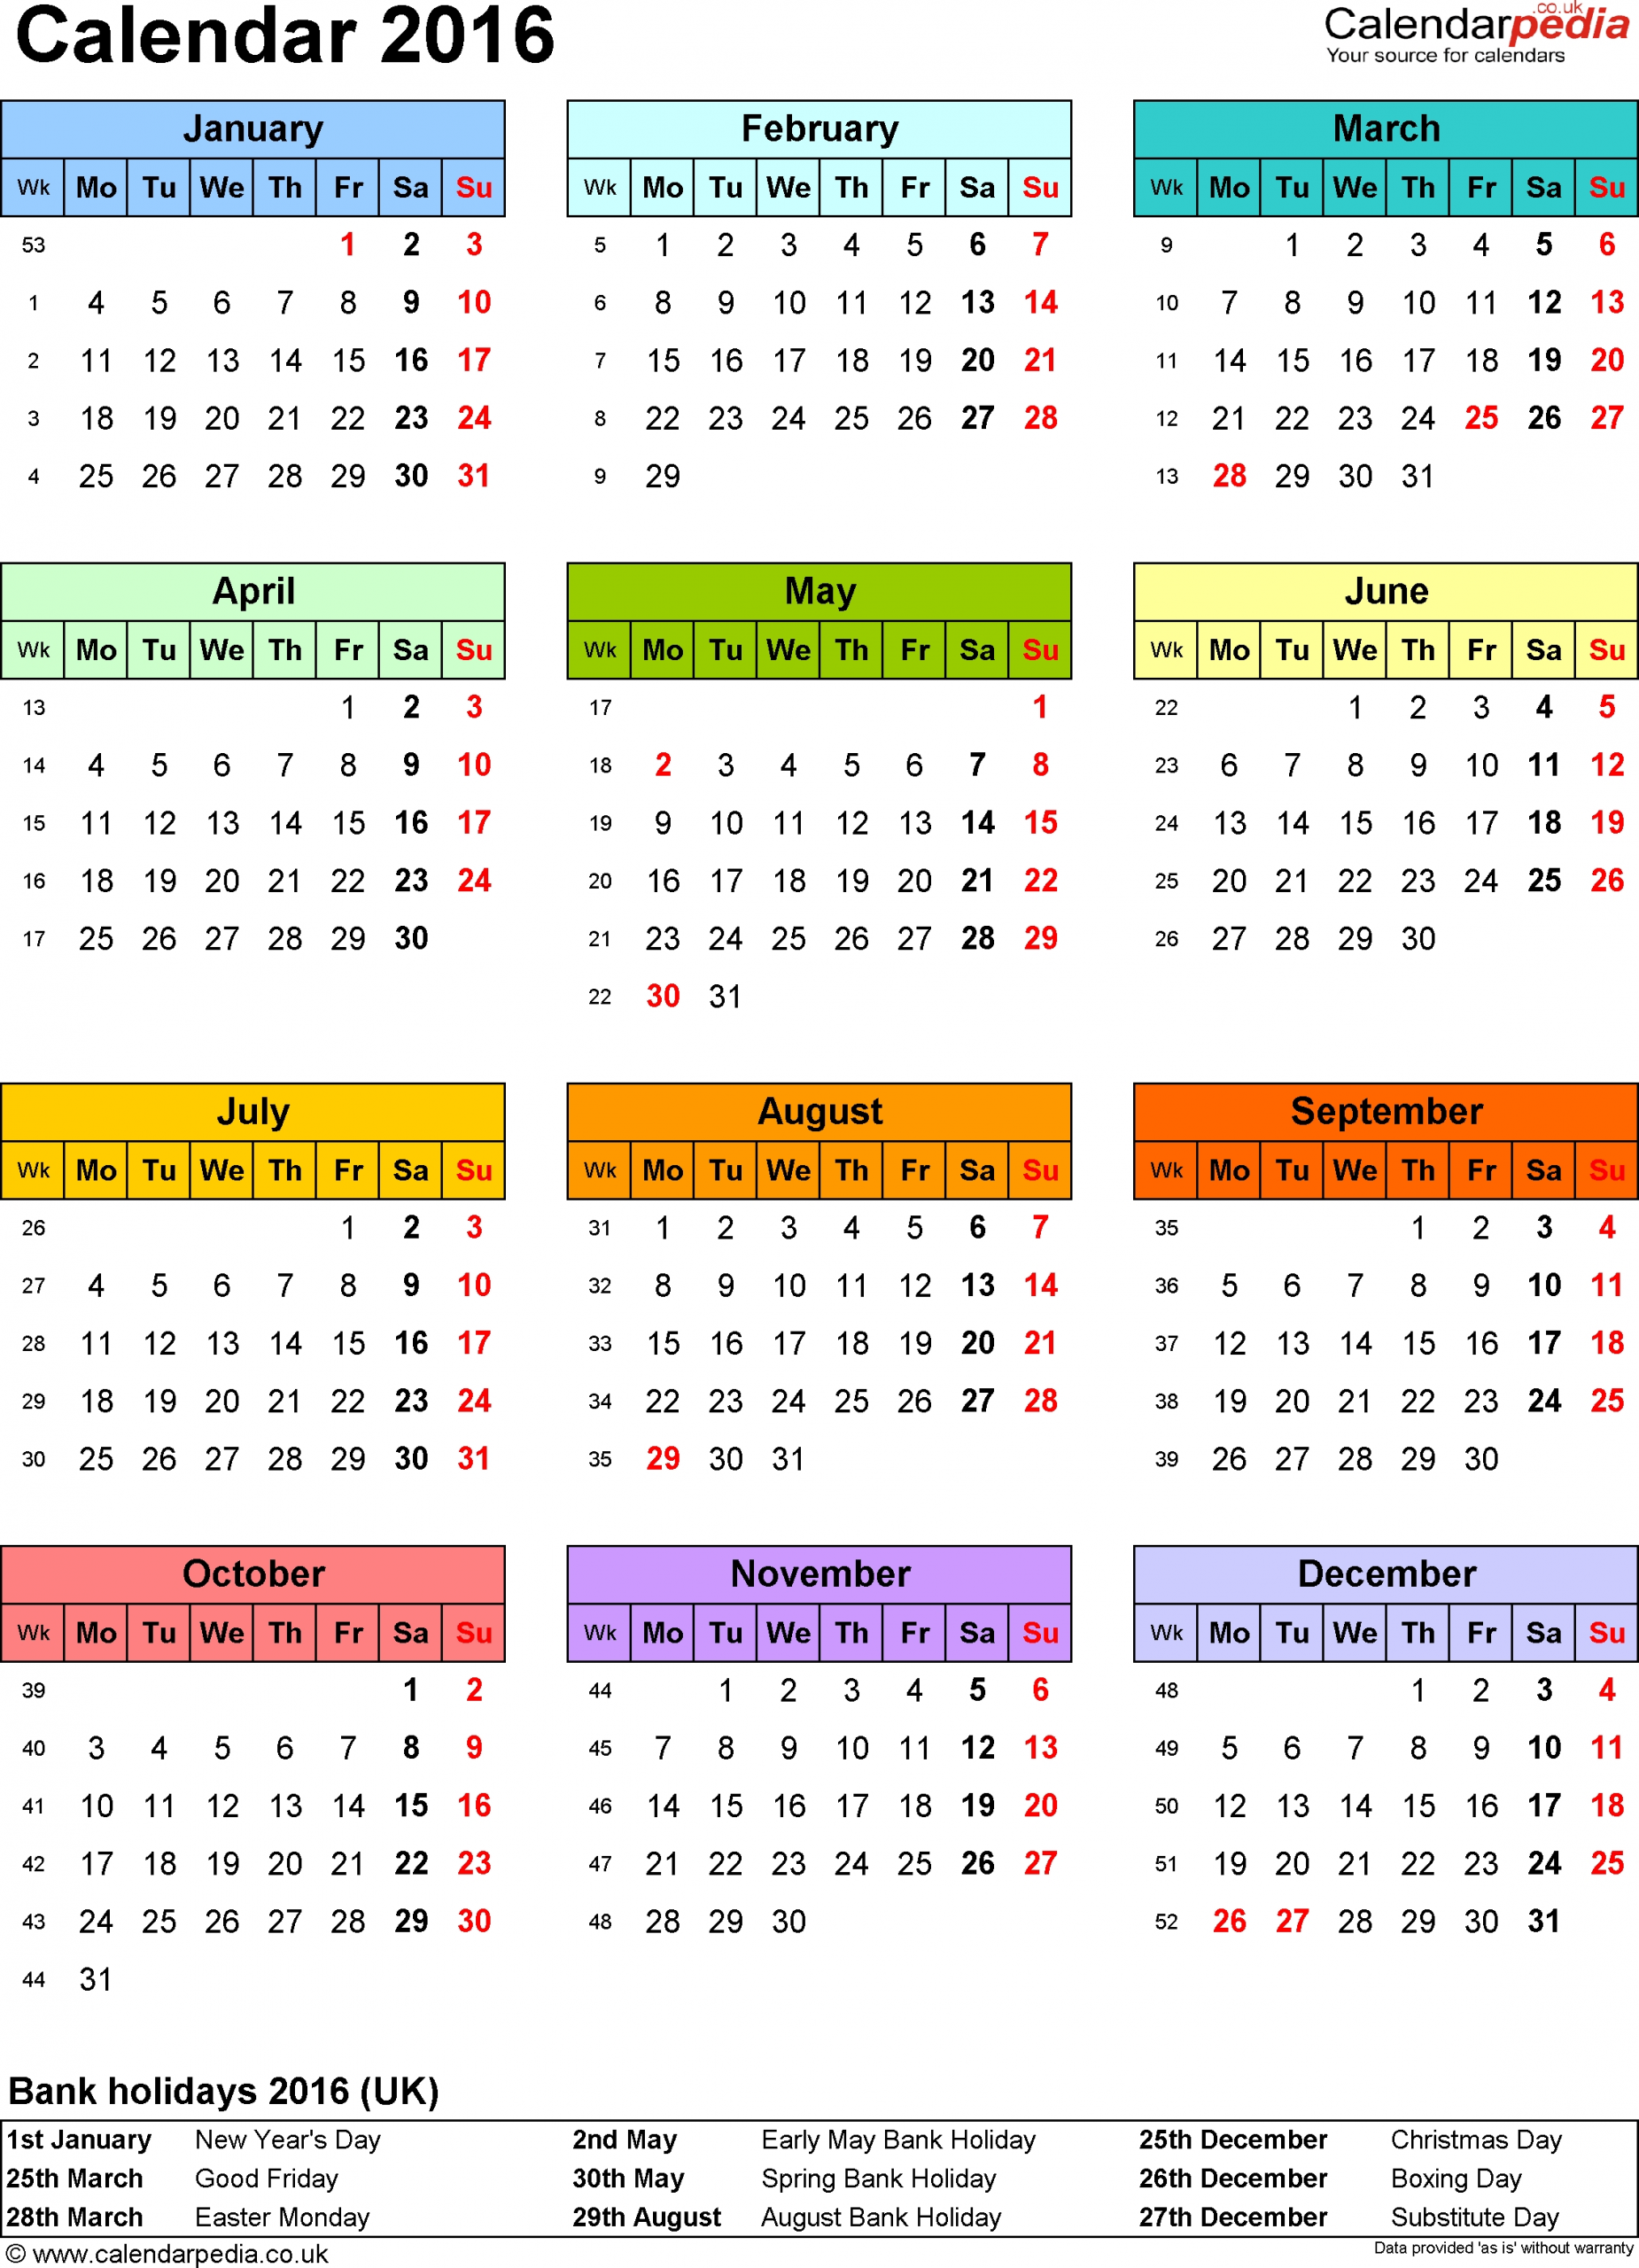 calendar printable images gallery category page 44